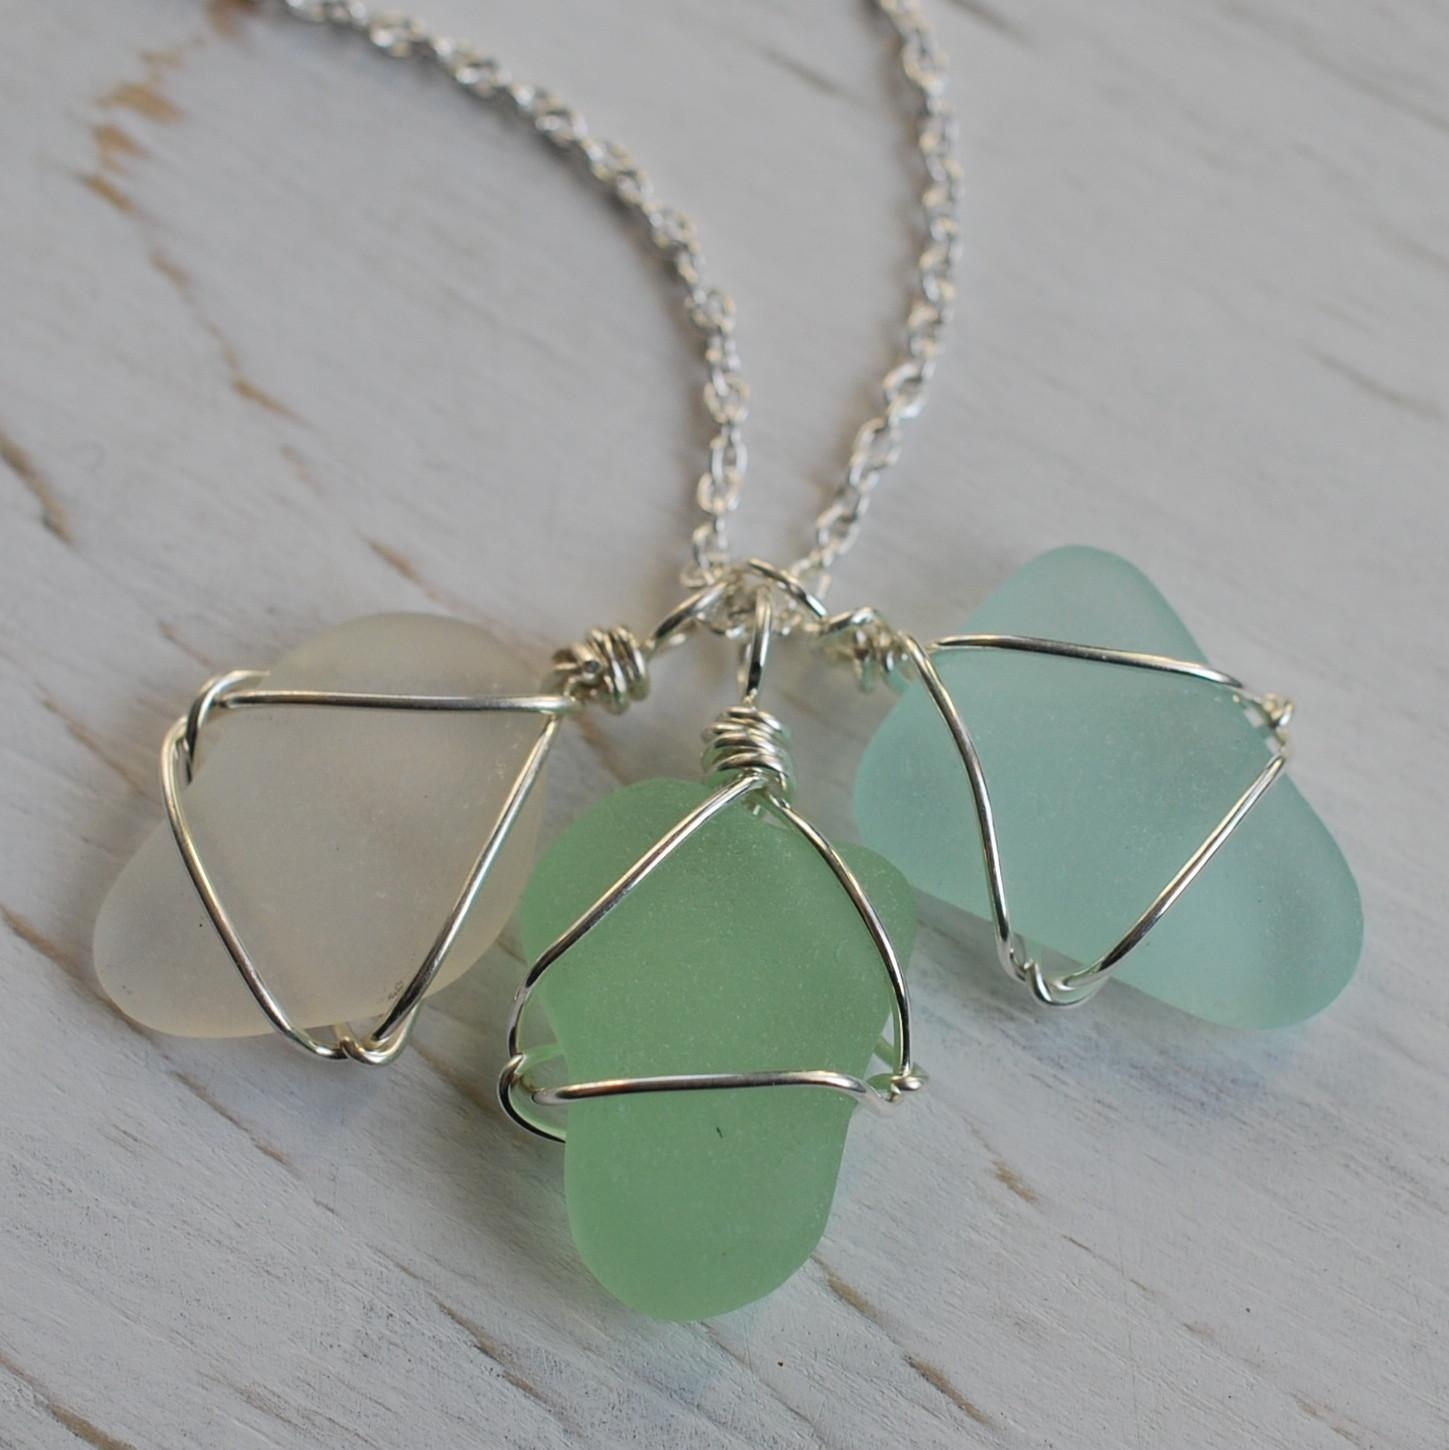 Sea Glass Jewelry Necklace Imgkid